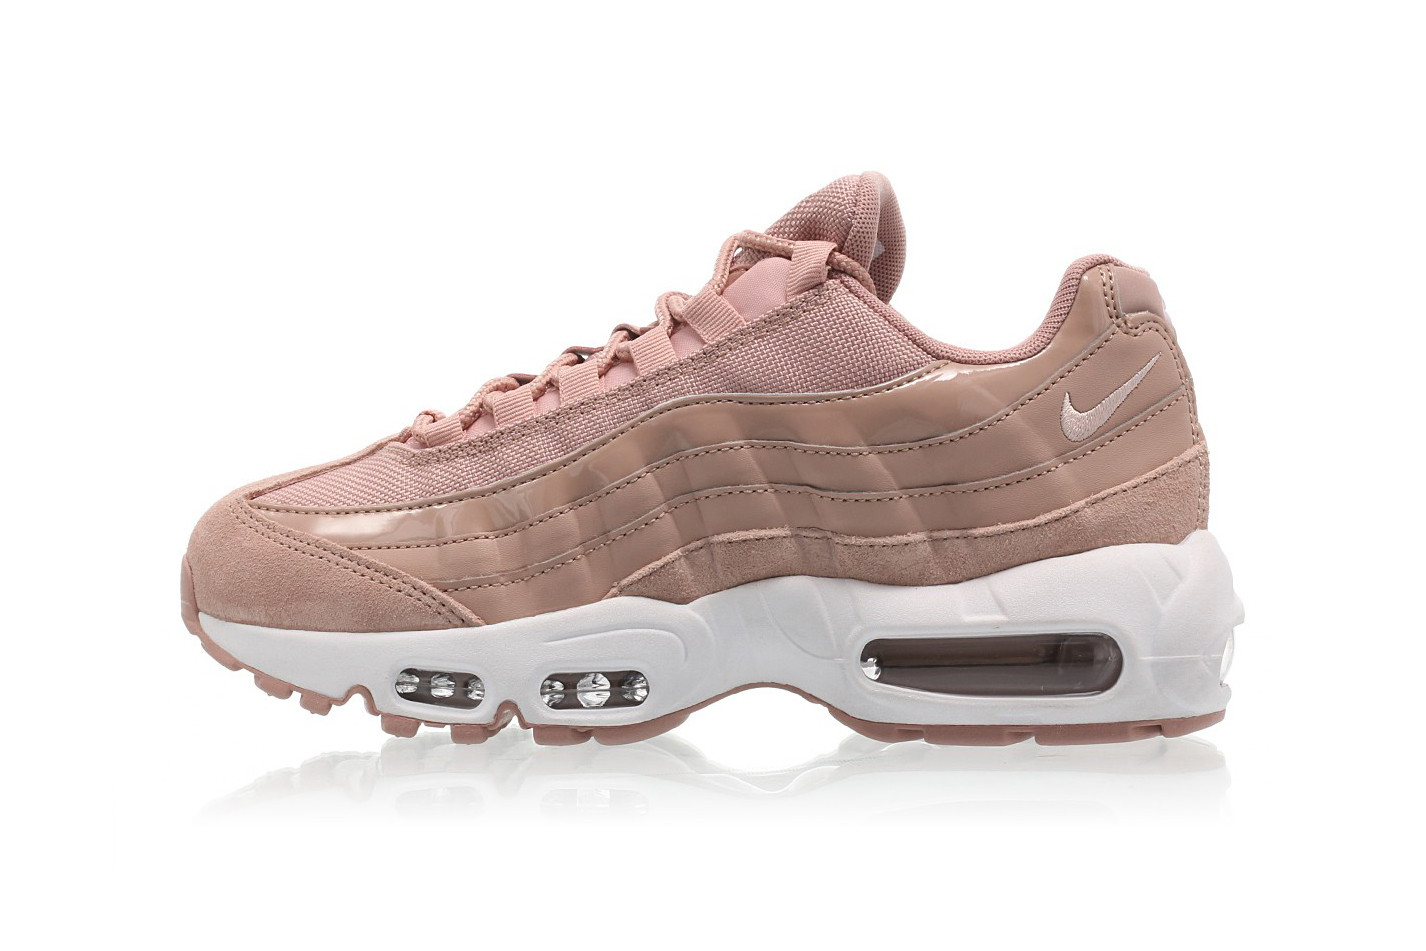 Nike Air Max 95 in Particle Pink | HYPEBAE